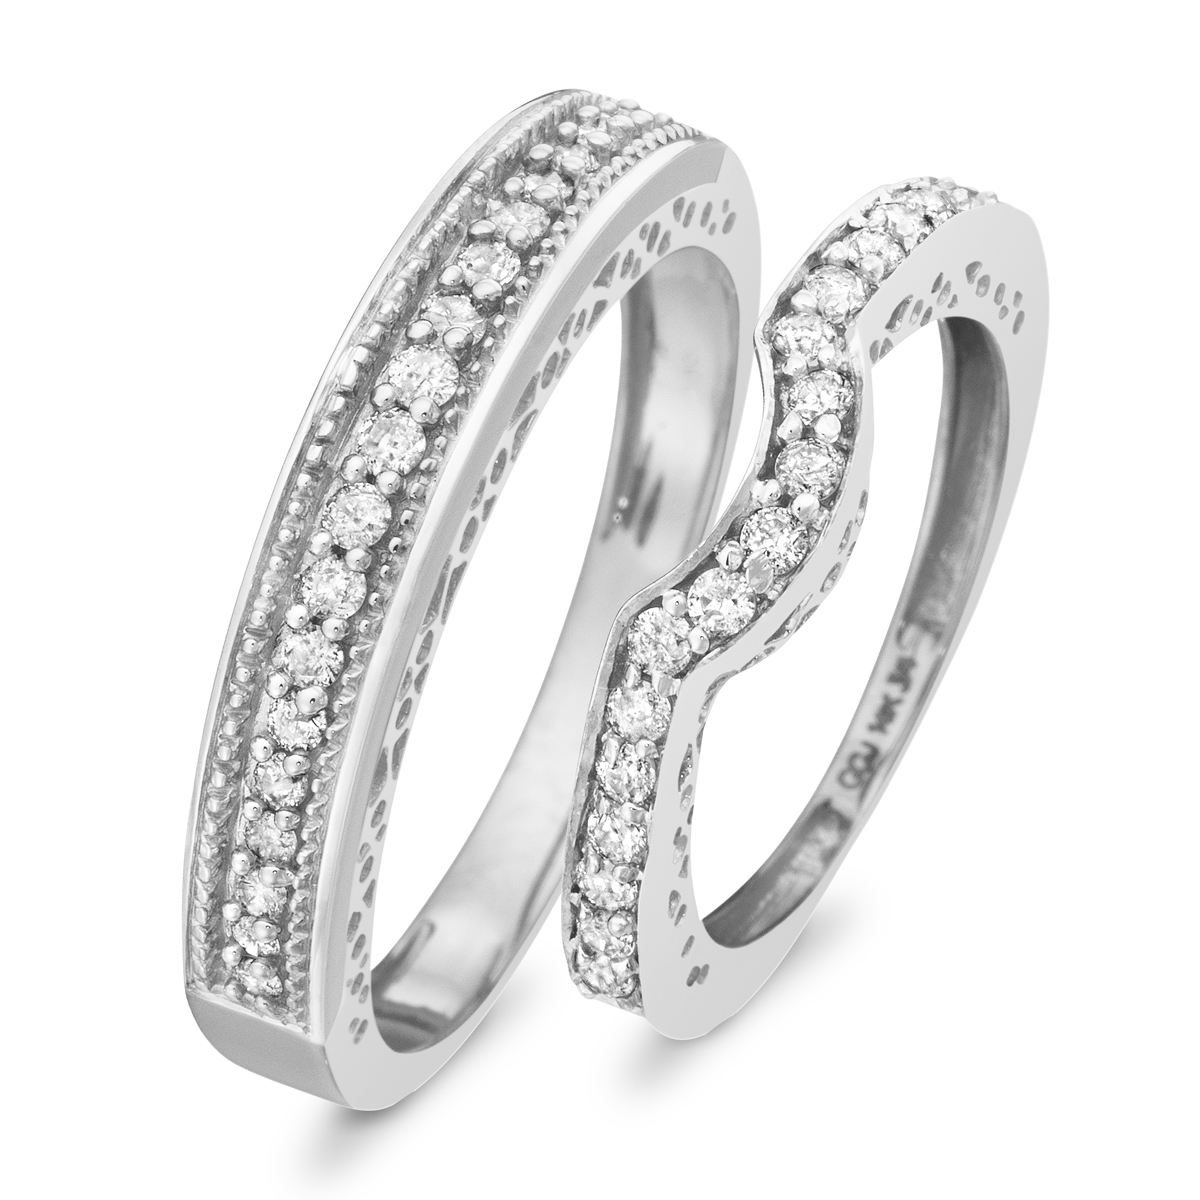 CT. T.W. Diamond Matching Wedding Band Set 14K White Gold